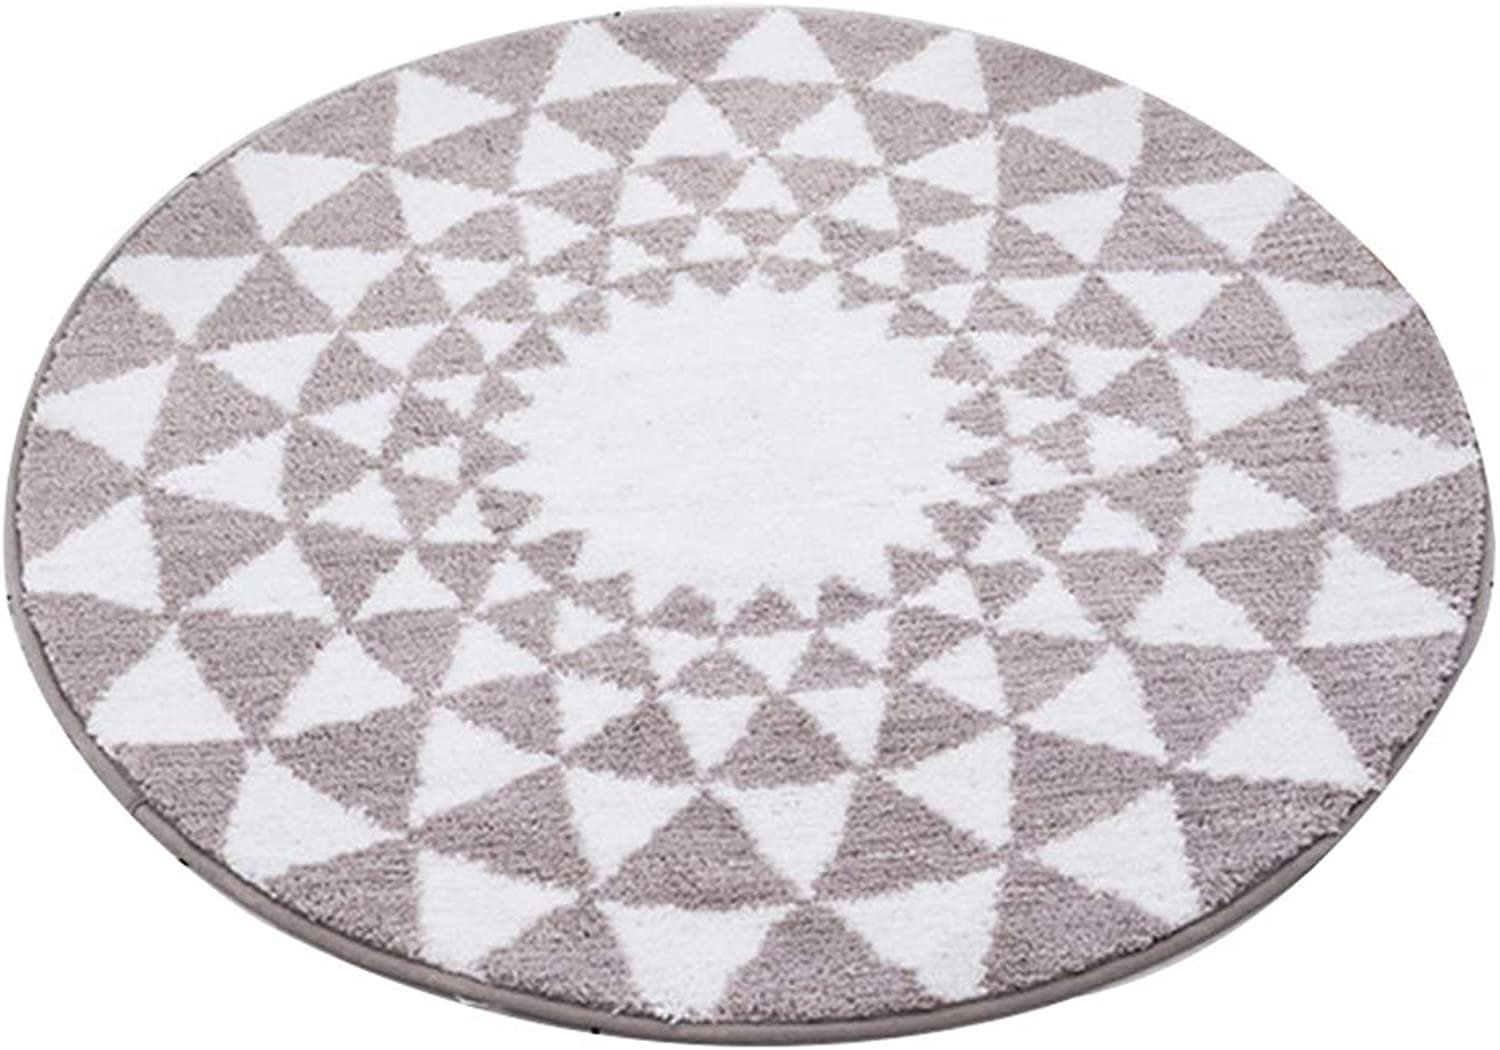 Style Nordic Bedroom Mats Living Room Coffee Table Swivel Chair Door Mats Round Carpet Home Hanging Basket Computer Chair Bedside Blanket (can Be Cut)